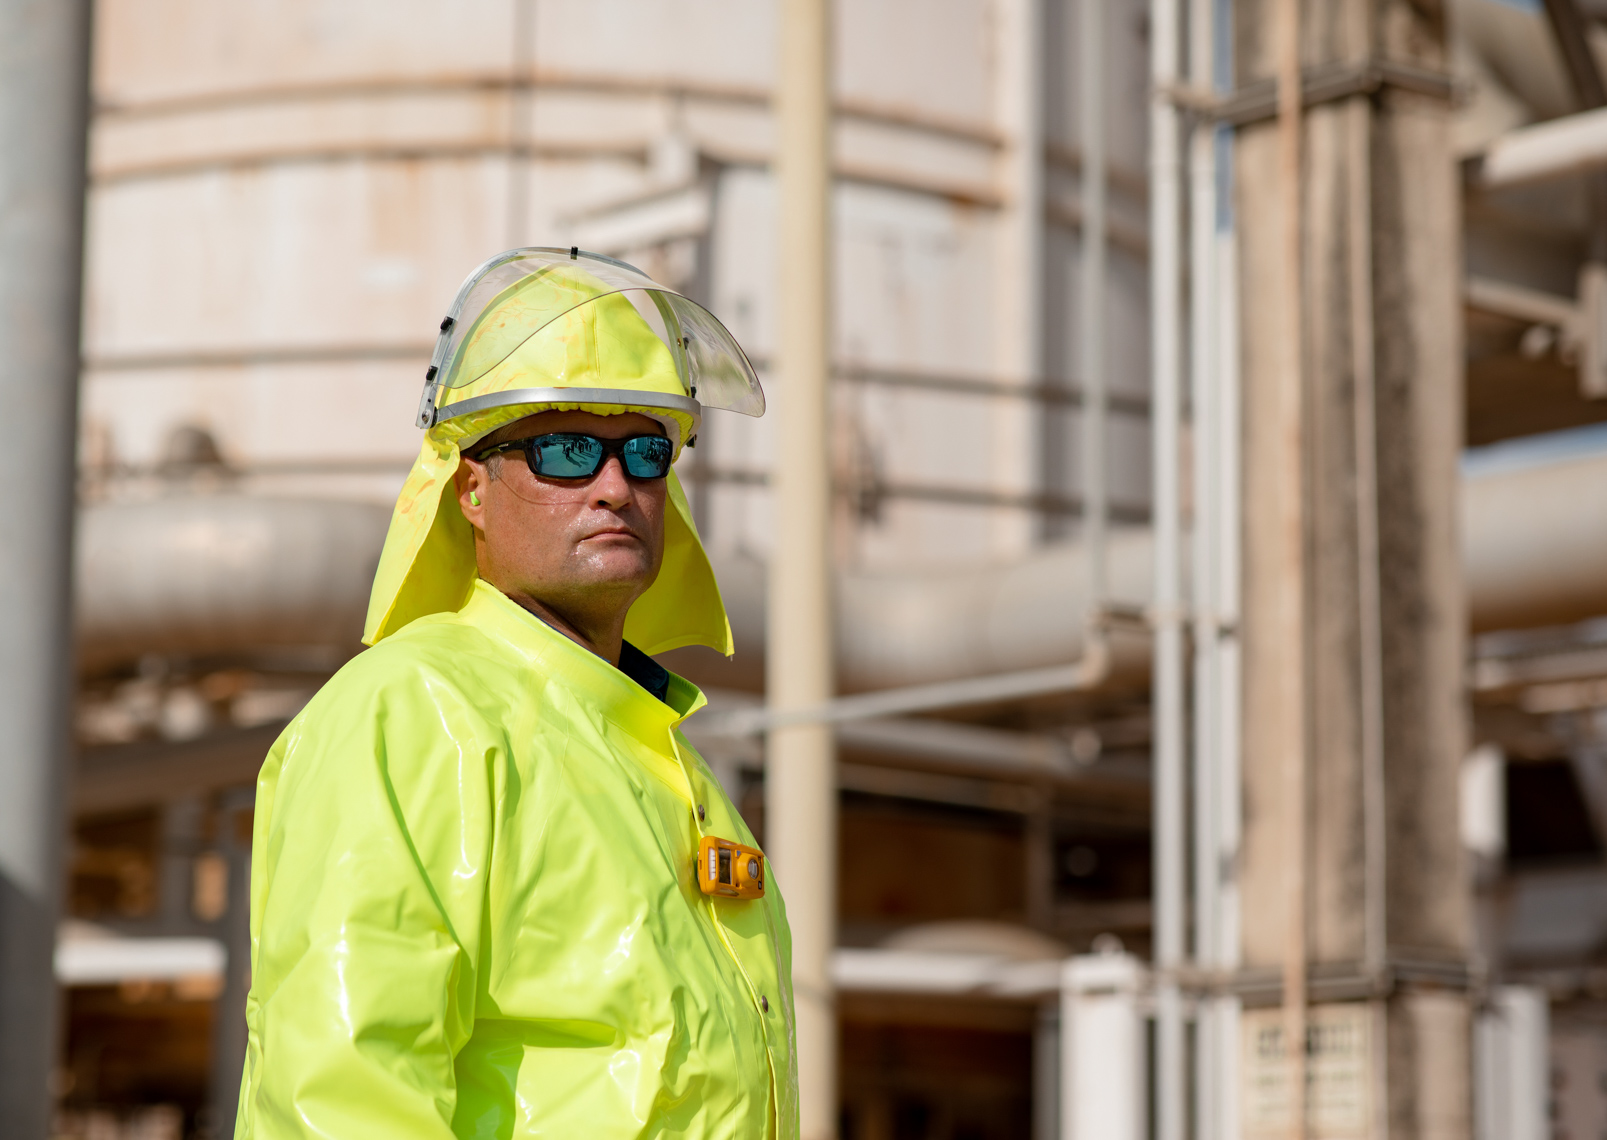 valero-oil-refiner-worker-portrait-corpus-texas-jason-risner-photography